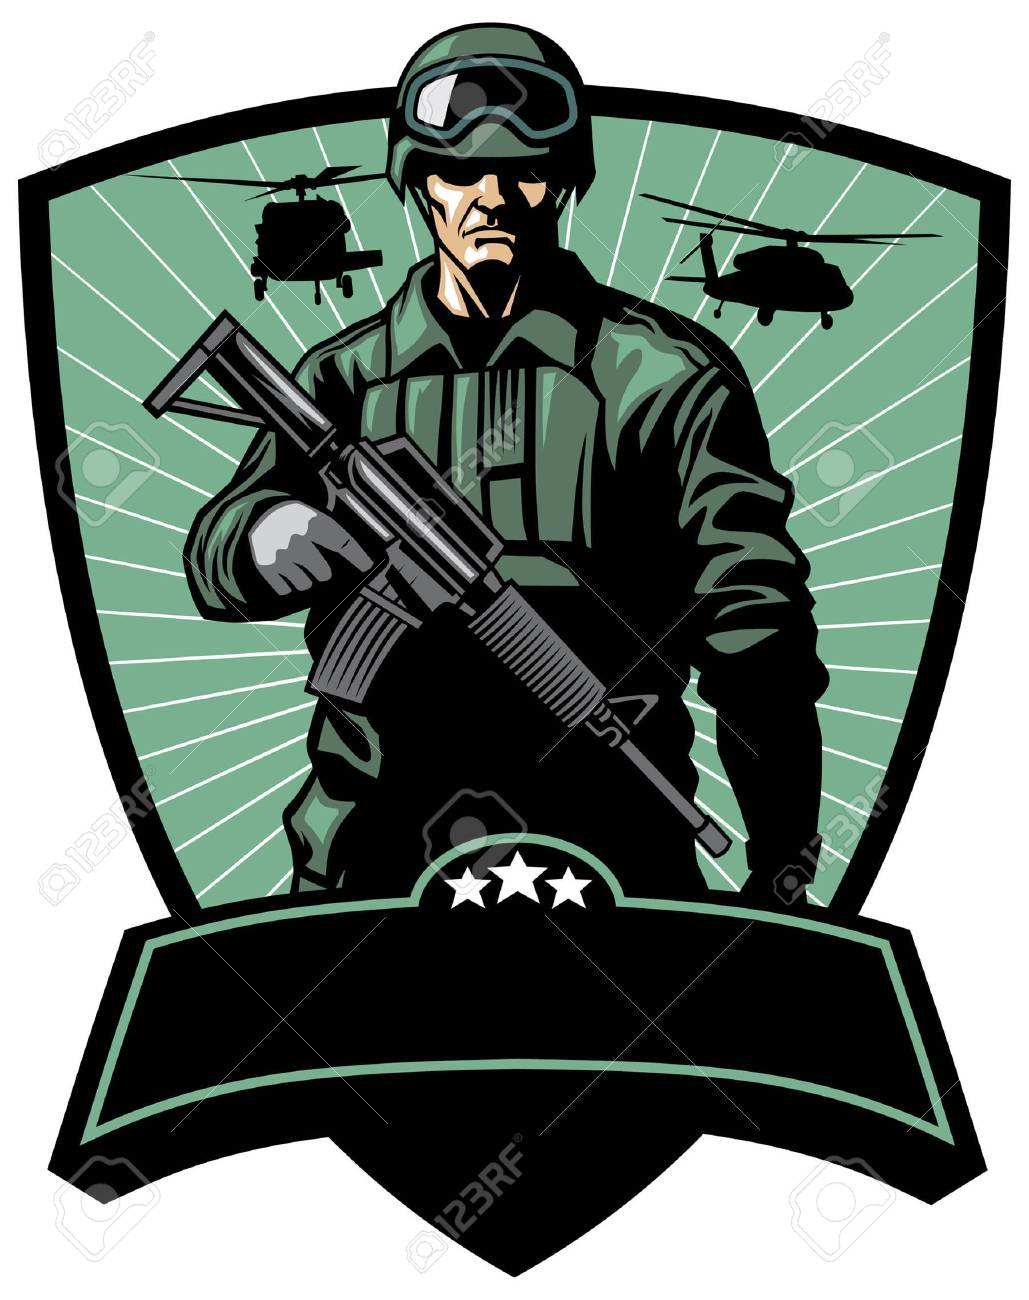 soldier army badge - 103834746